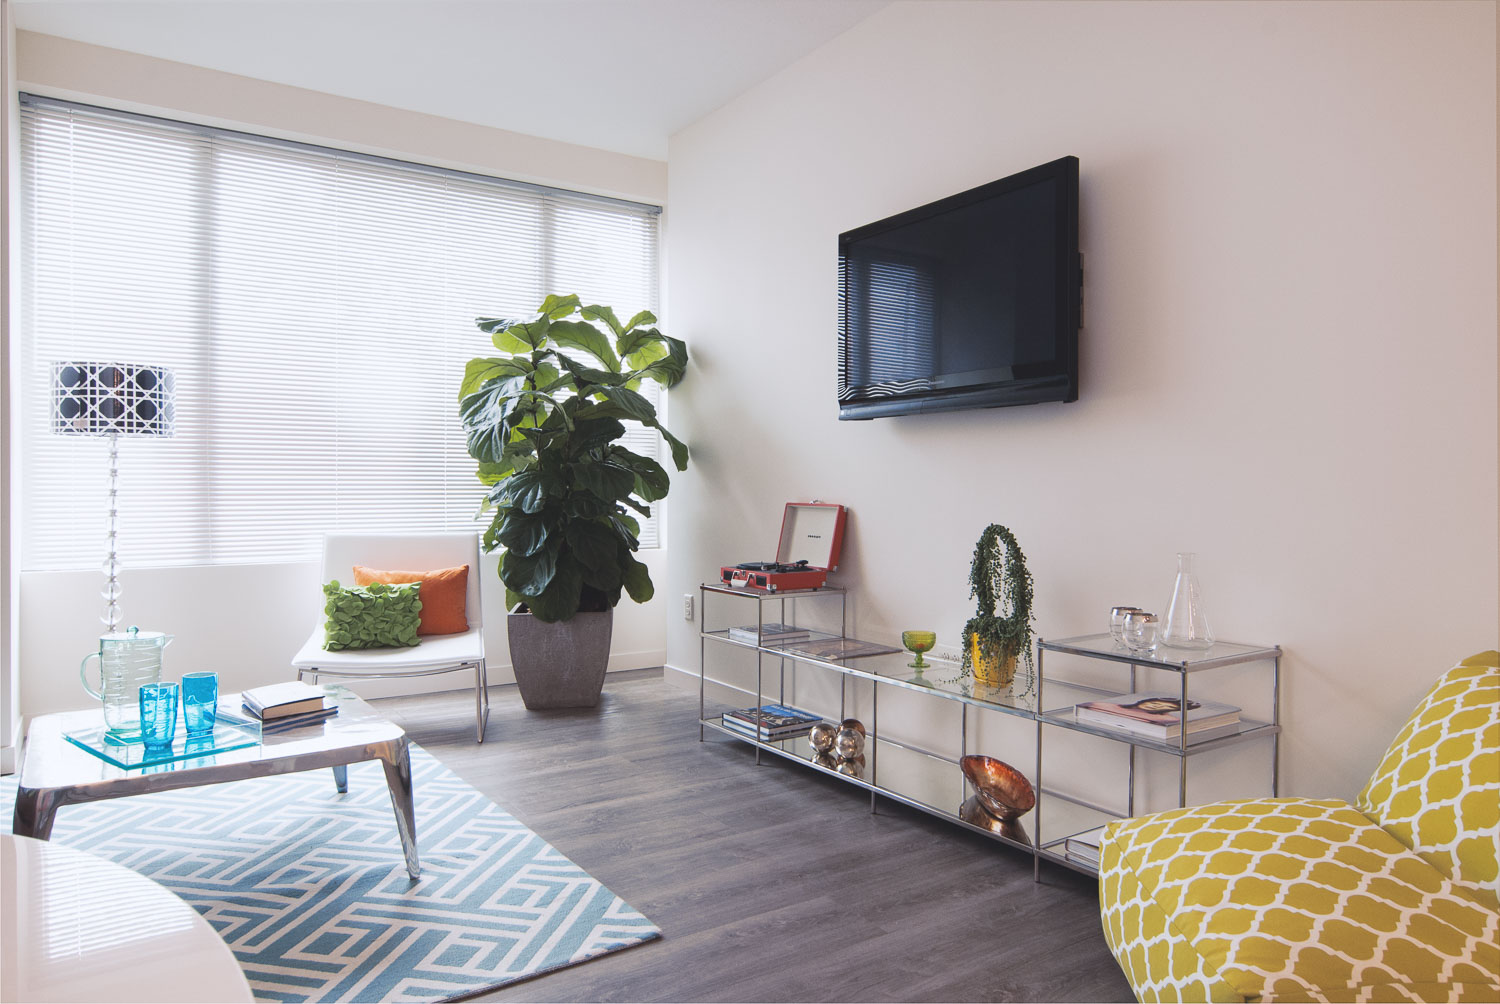 Living area at Innova Apartments in University Circle